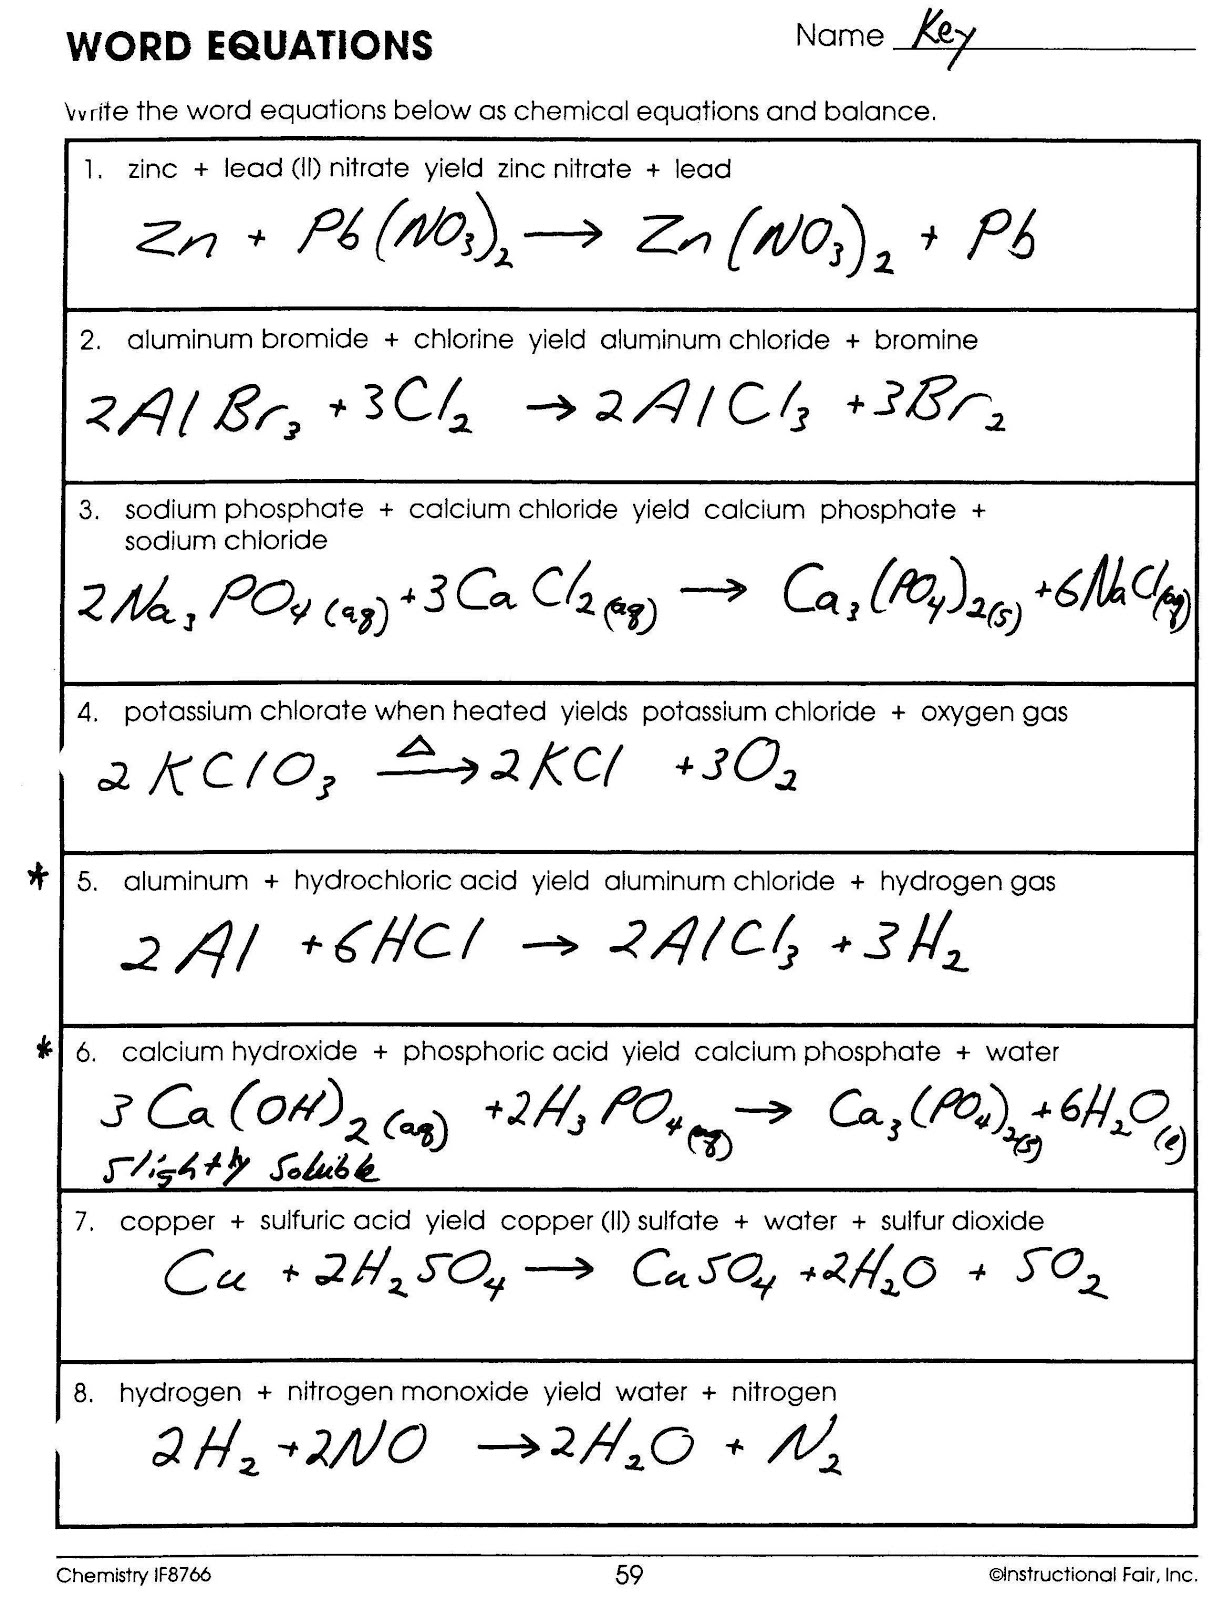 Word Equations Worksheet The Best Worksheets Image Collection